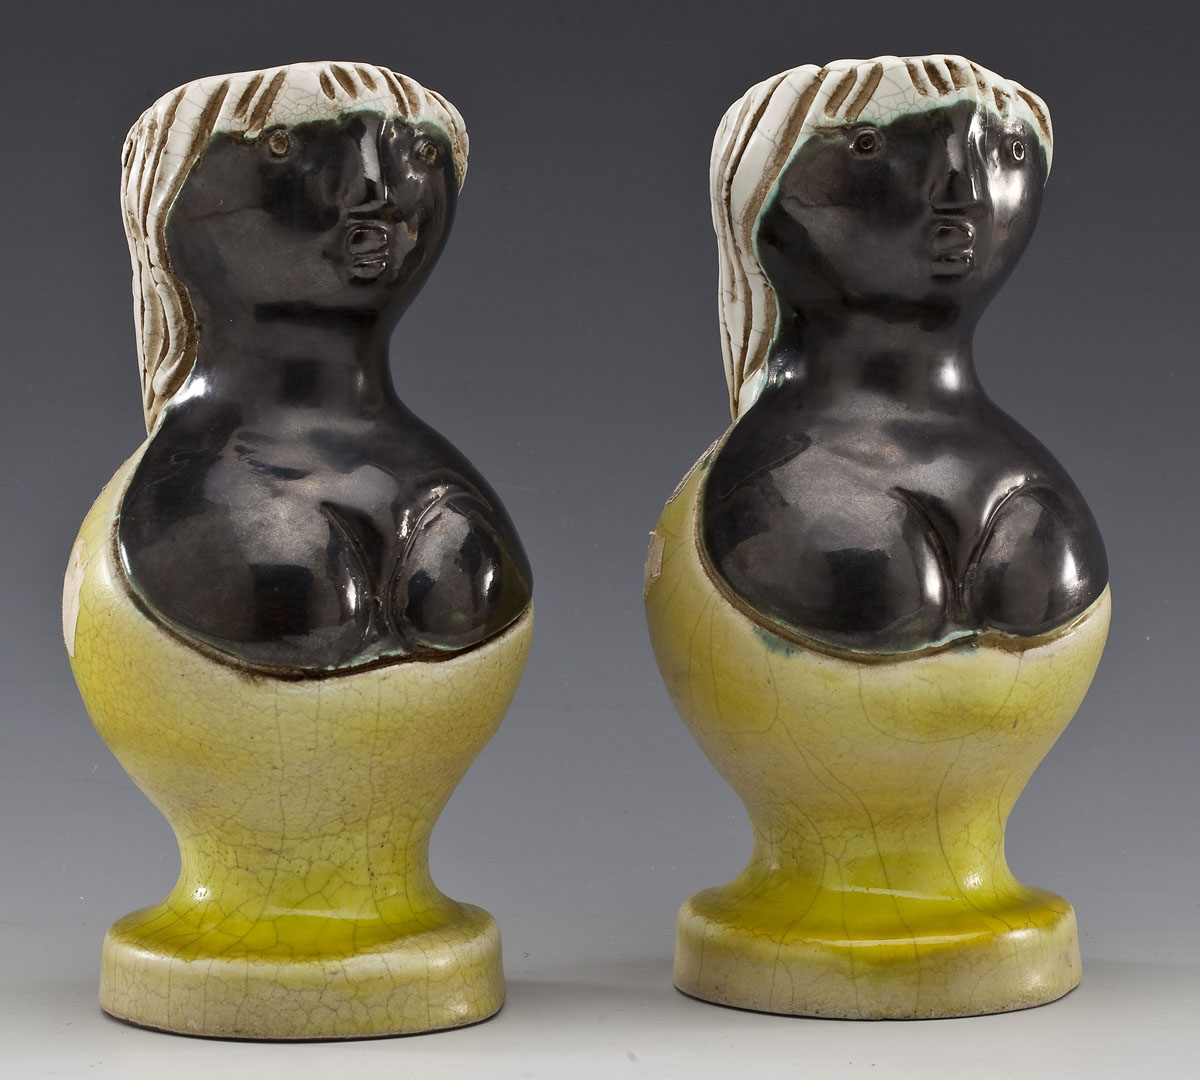 Pair of Figural Vases by Georges Jouve ($4,200)